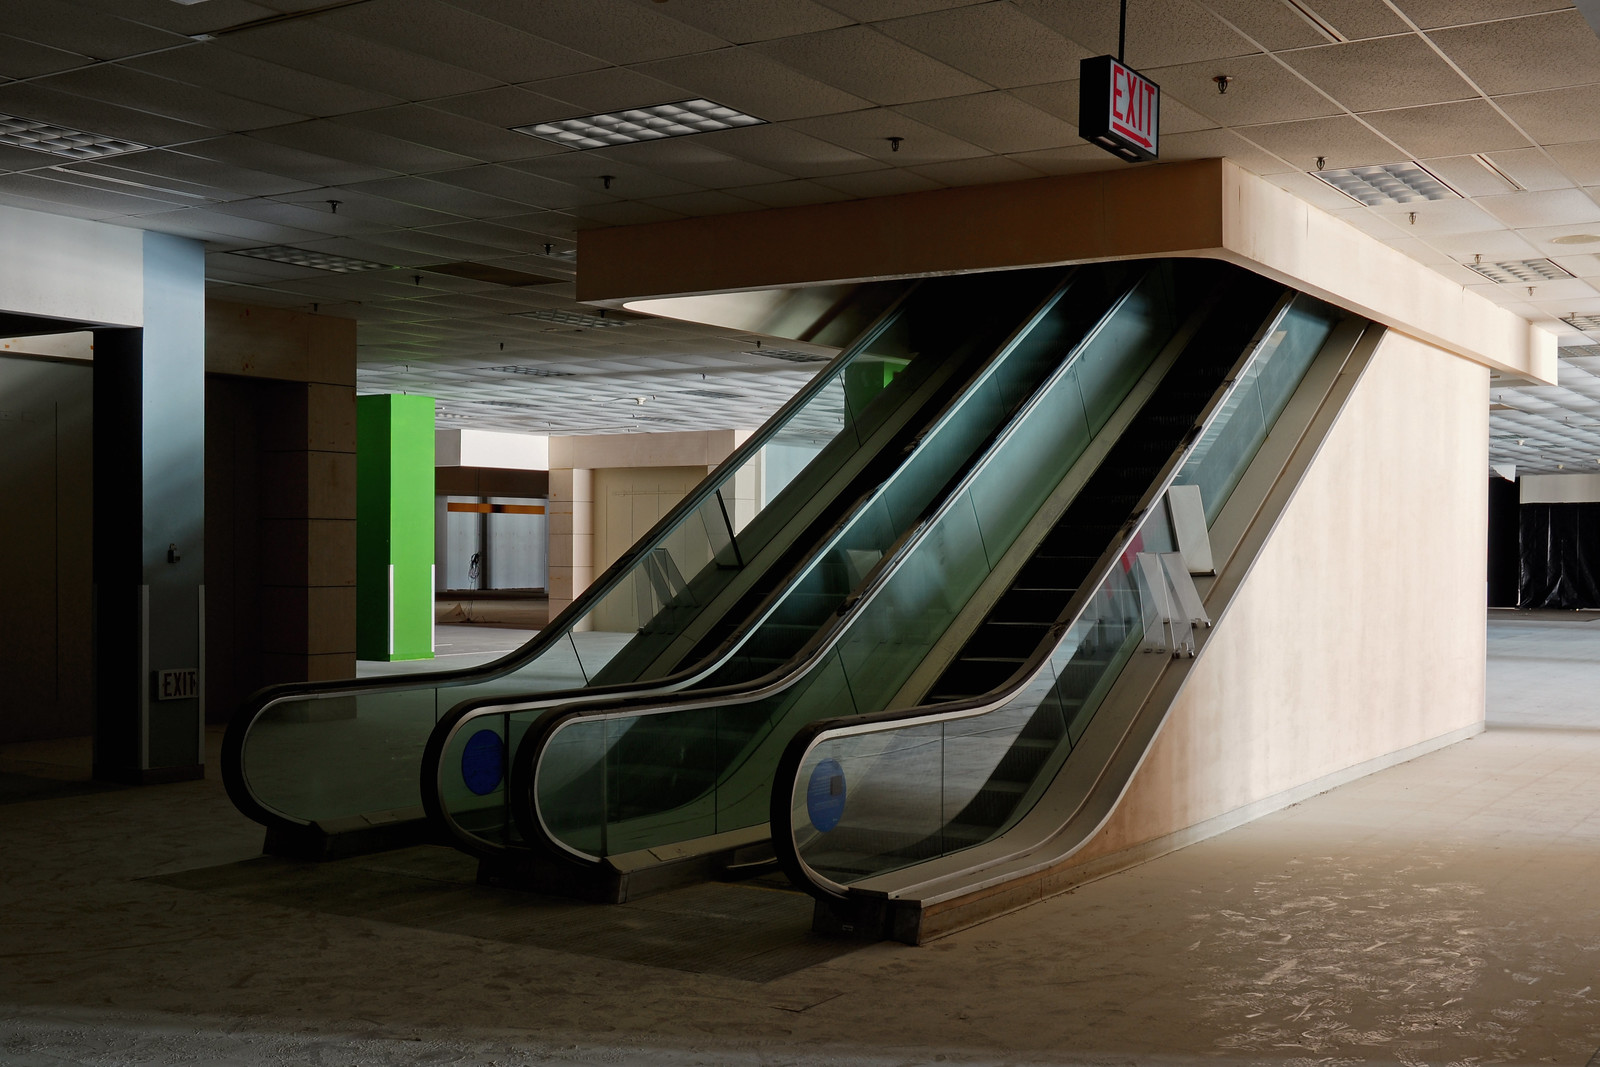 The Ghost of Sears' Future